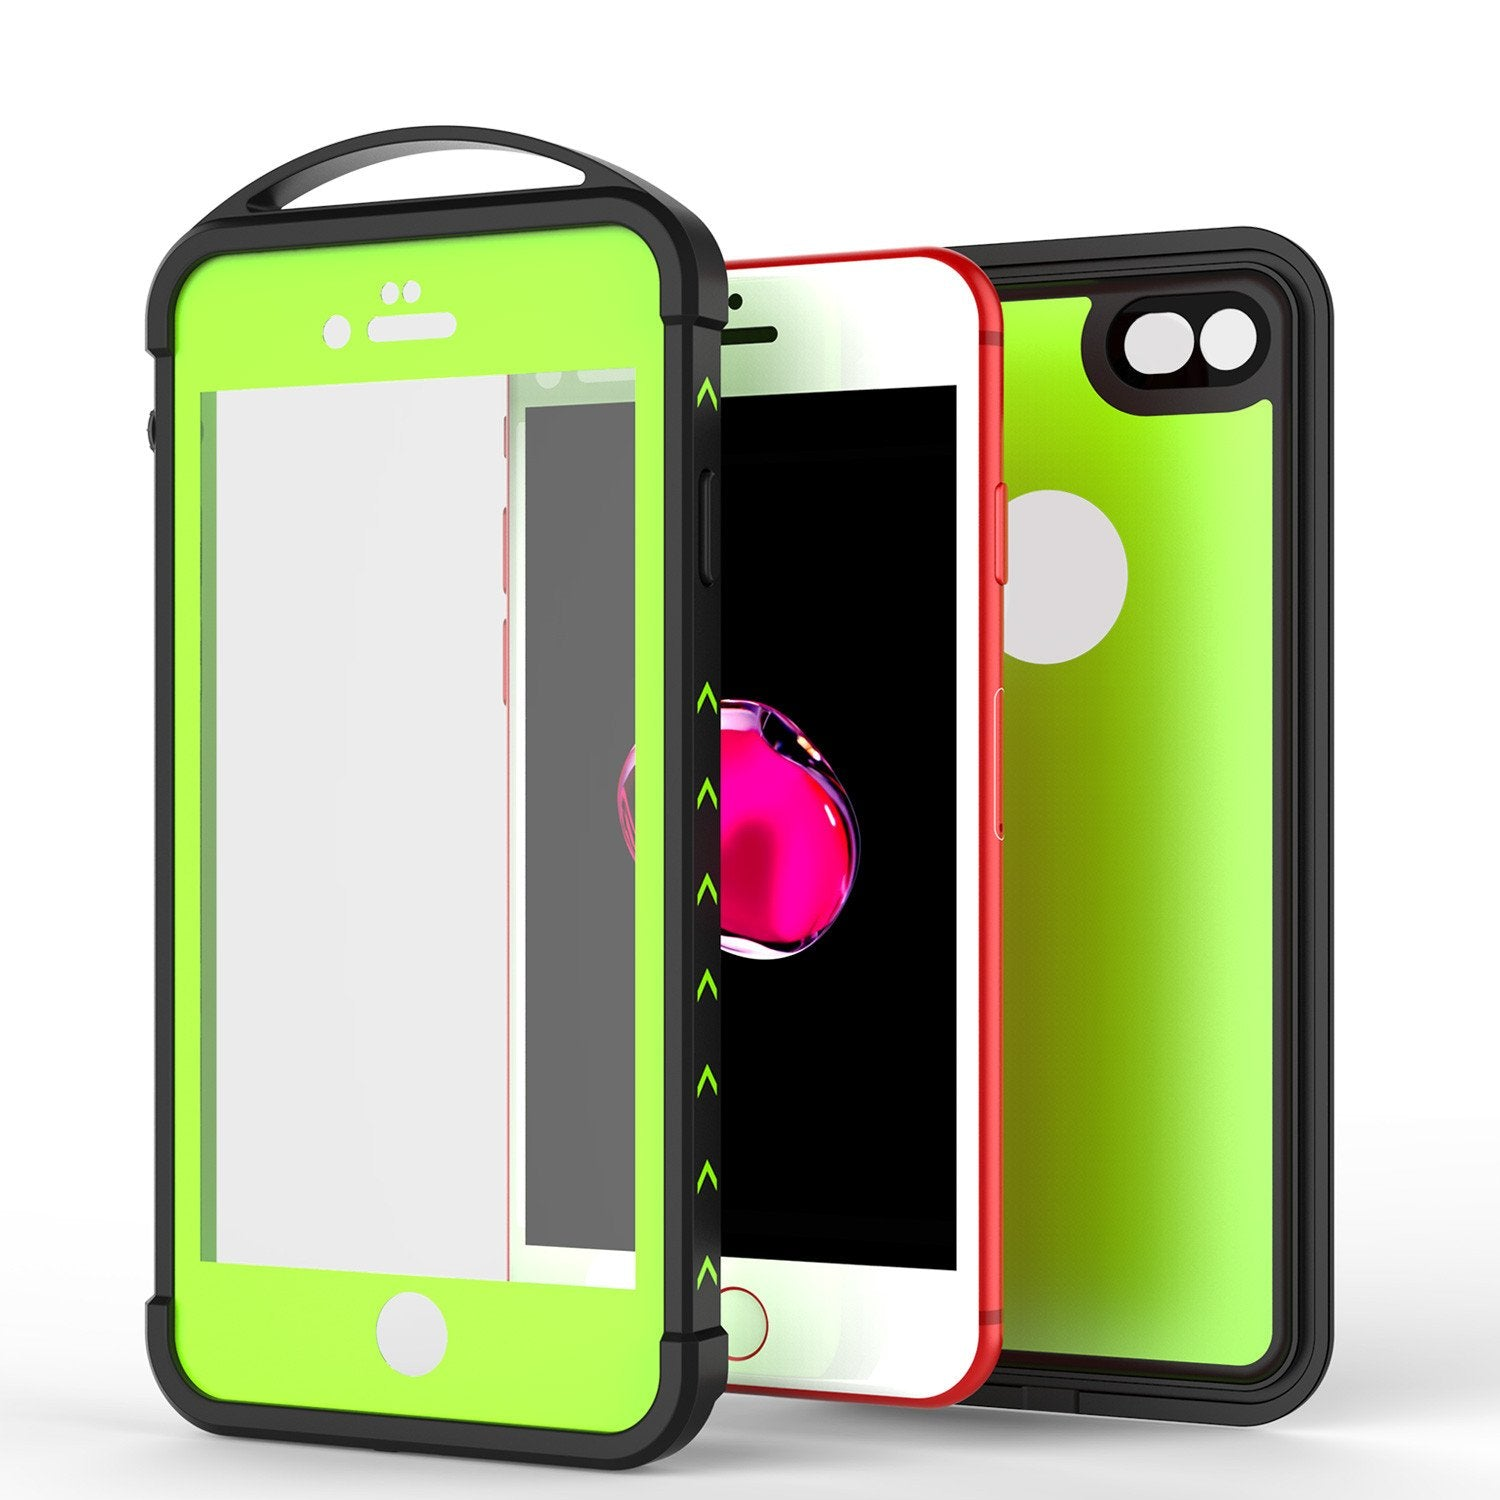 iPhone 7 Waterproof Case, Punkcase ALPINE Series, Light Green | Heavy Duty Armor Cover - PunkCase NZ